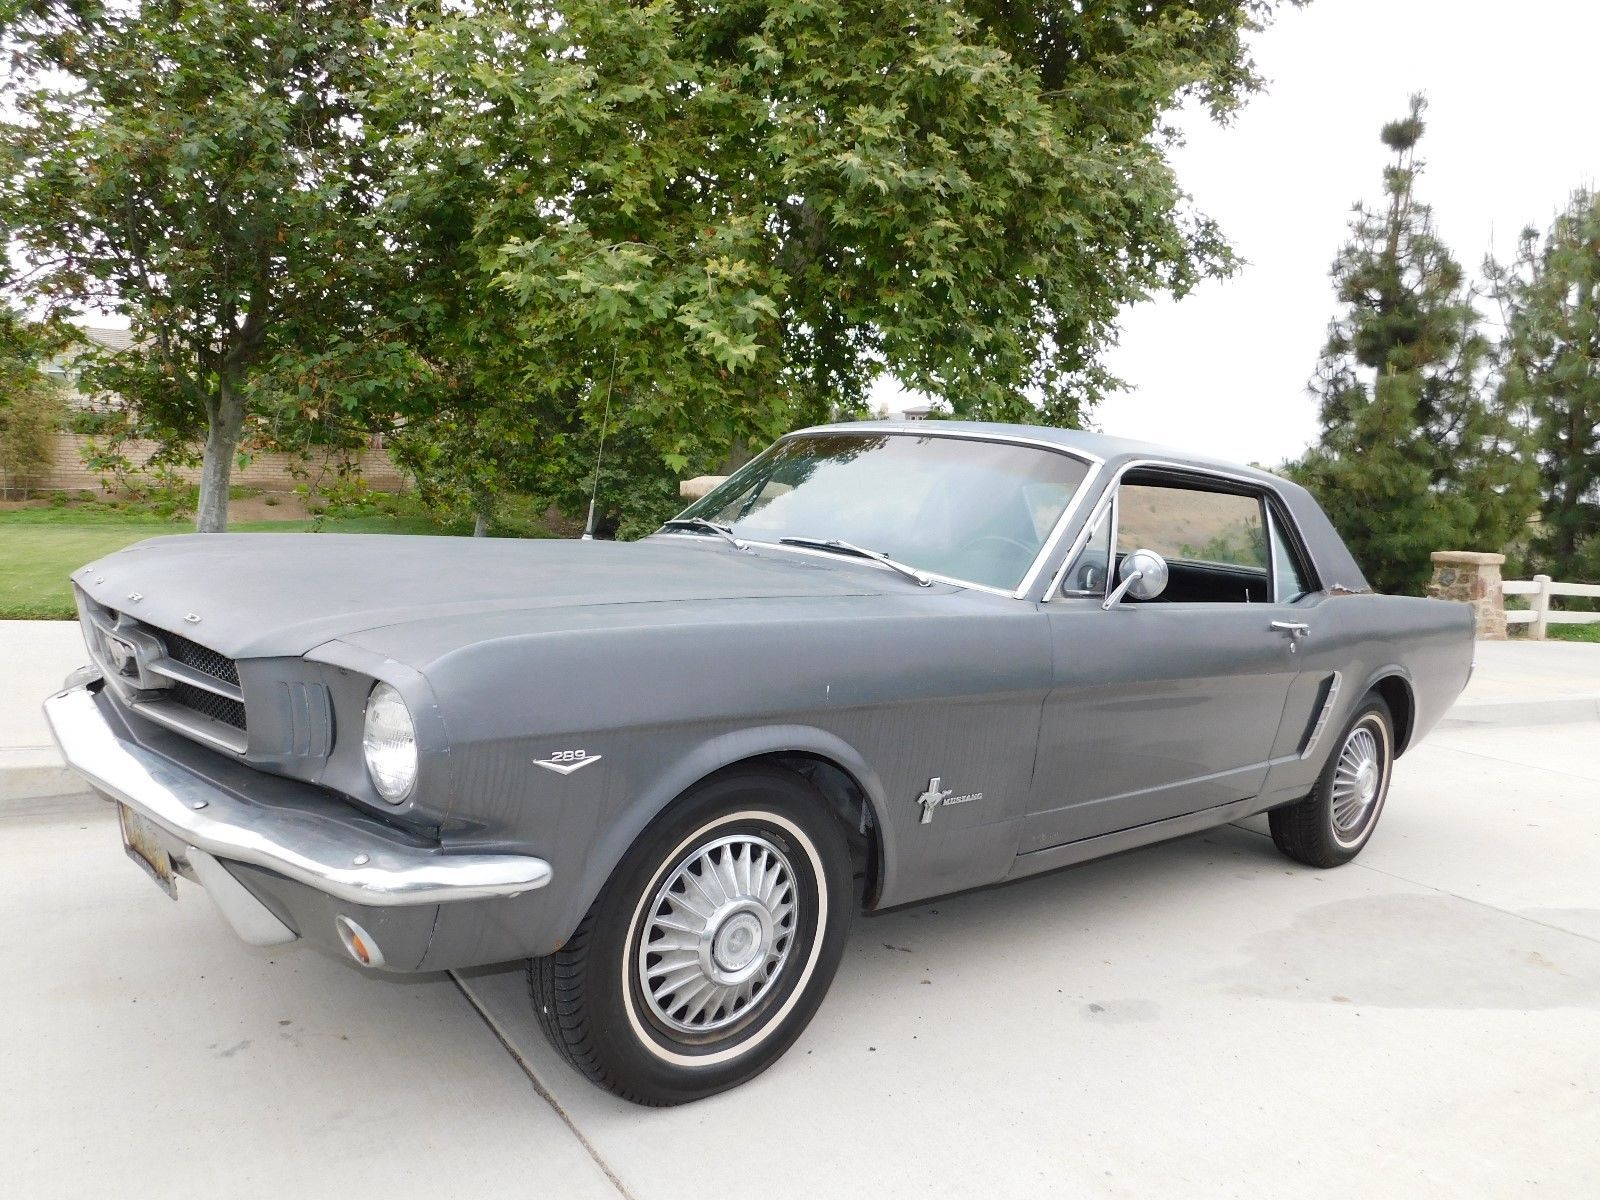 Ebay 1965 ford mustang coupe 1965 ford mustang coupe no reserve mustang fastback little brother fordmustang ford